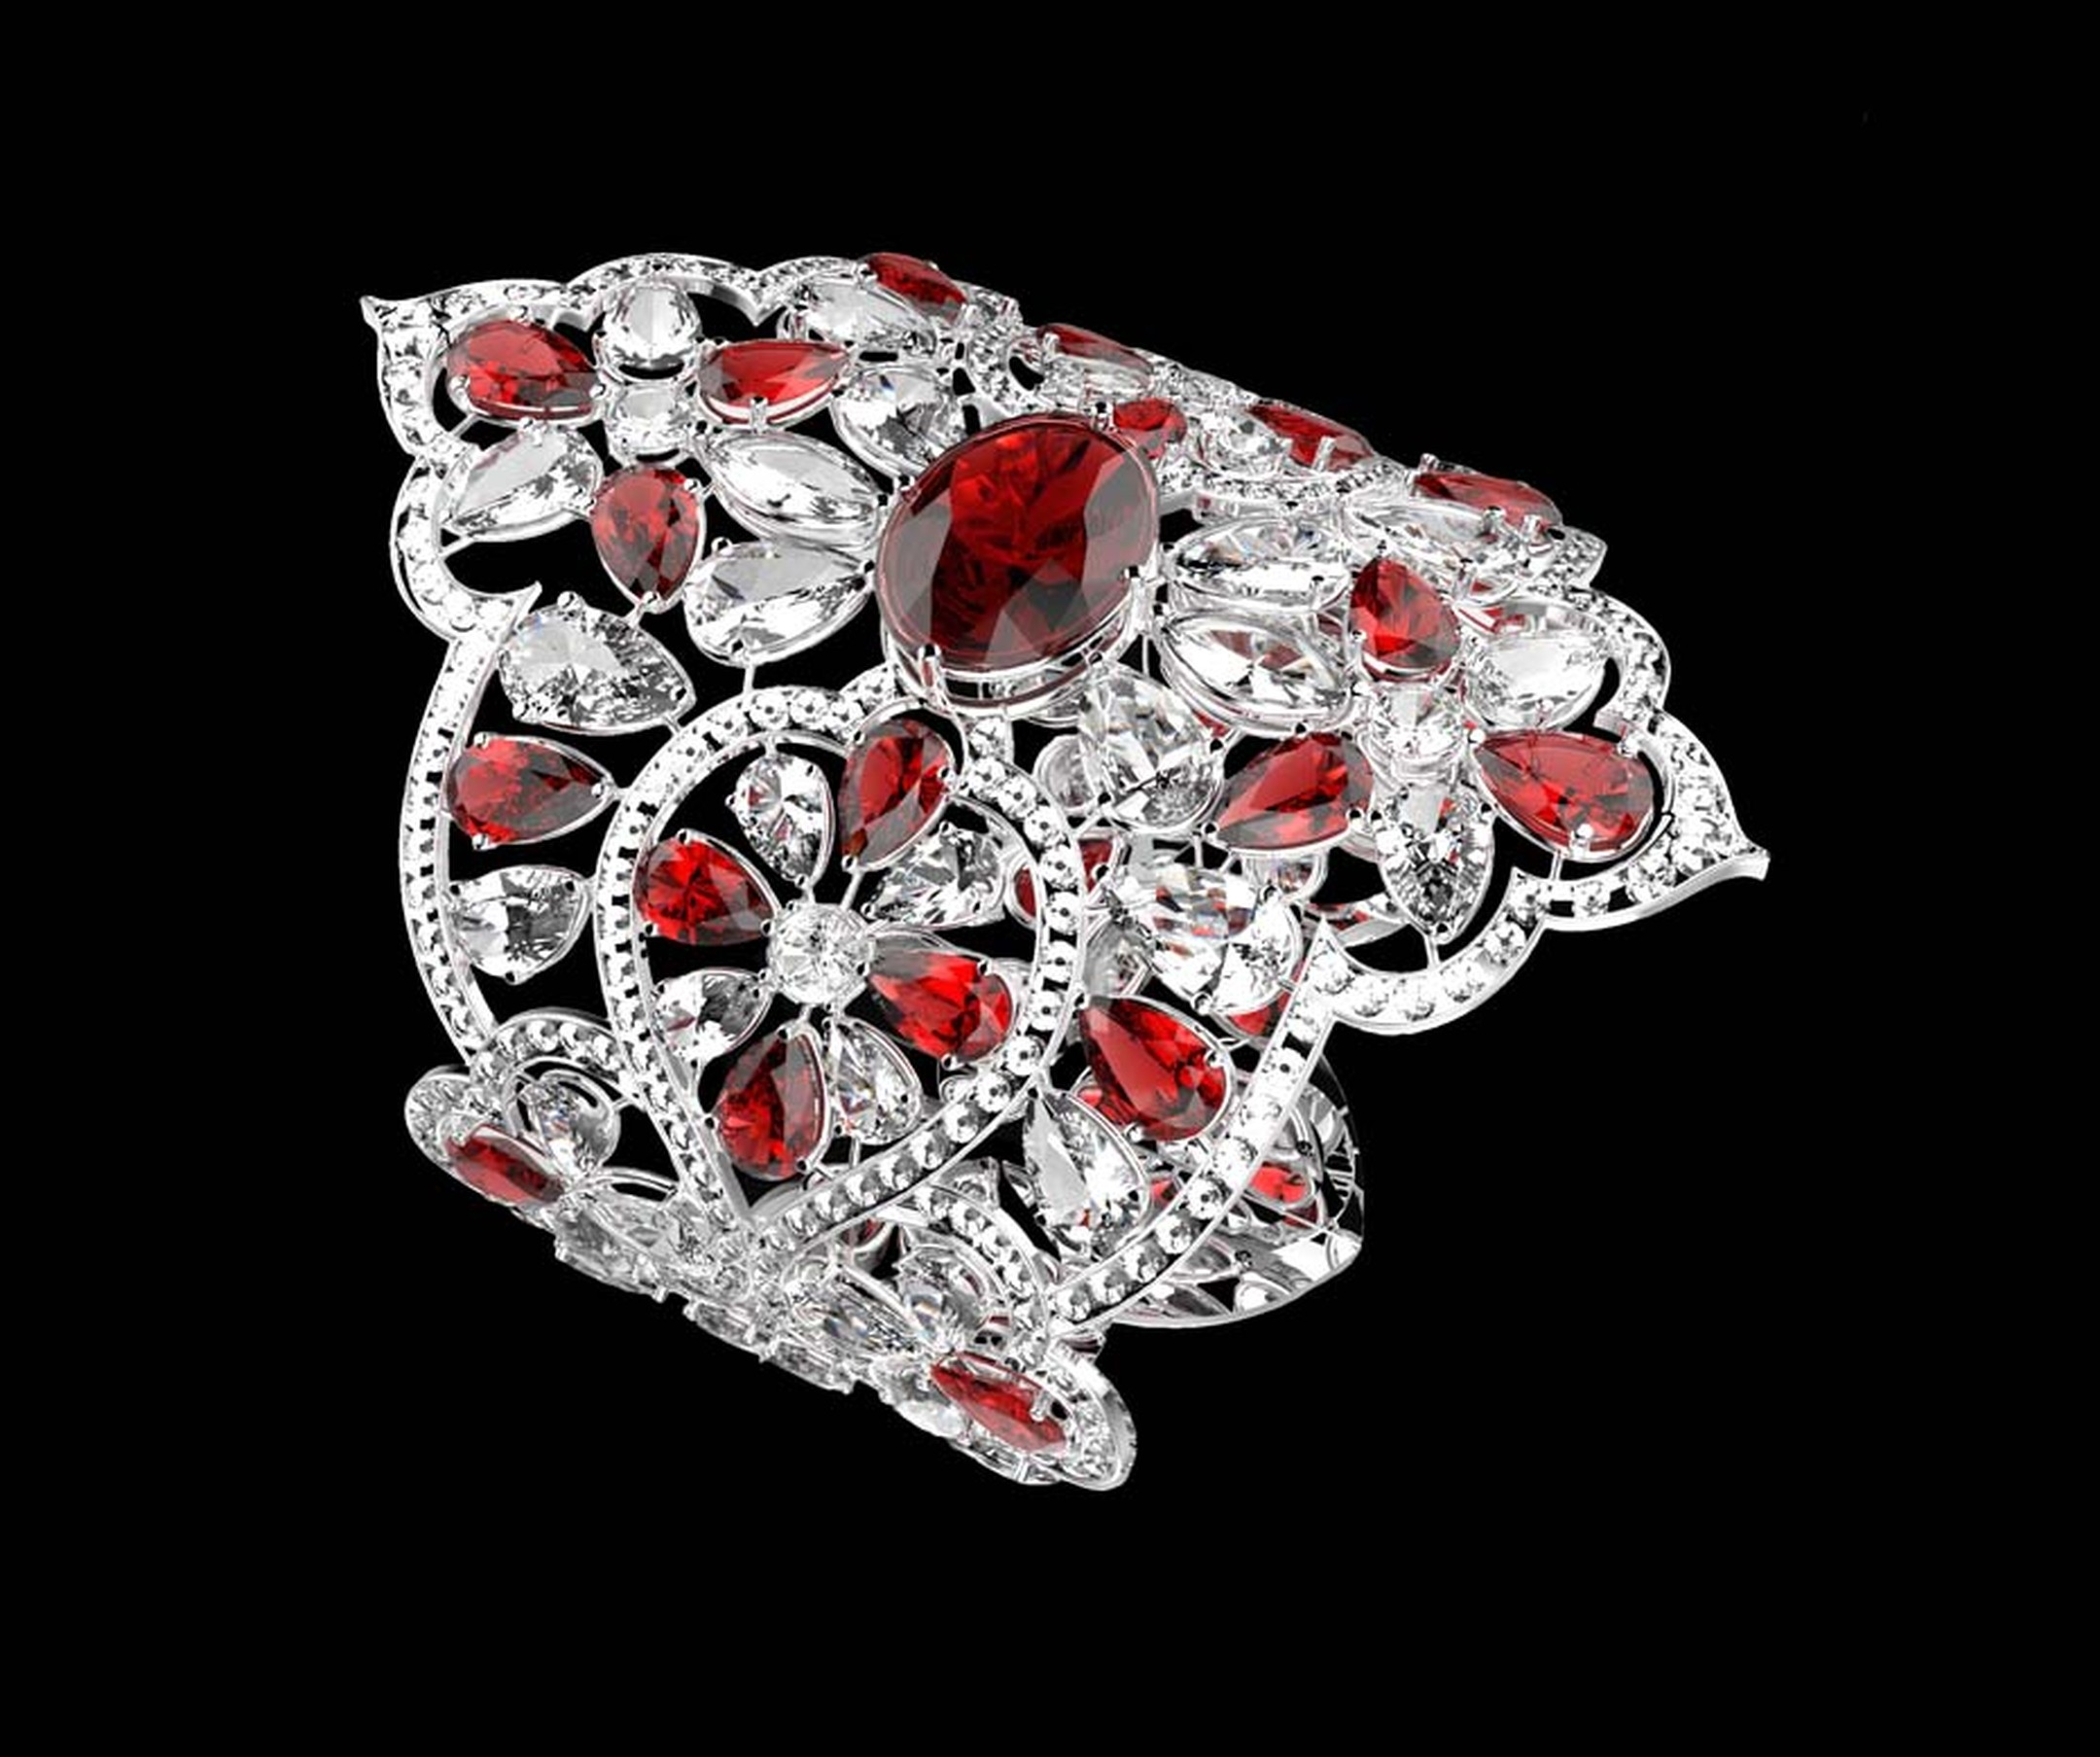 Orlov's €4 million ruby and diamond bracelet features a central 12ct oval ruby as well as an intricate openwork lace design set with fancy-cut diamonds and Burmese rubies.